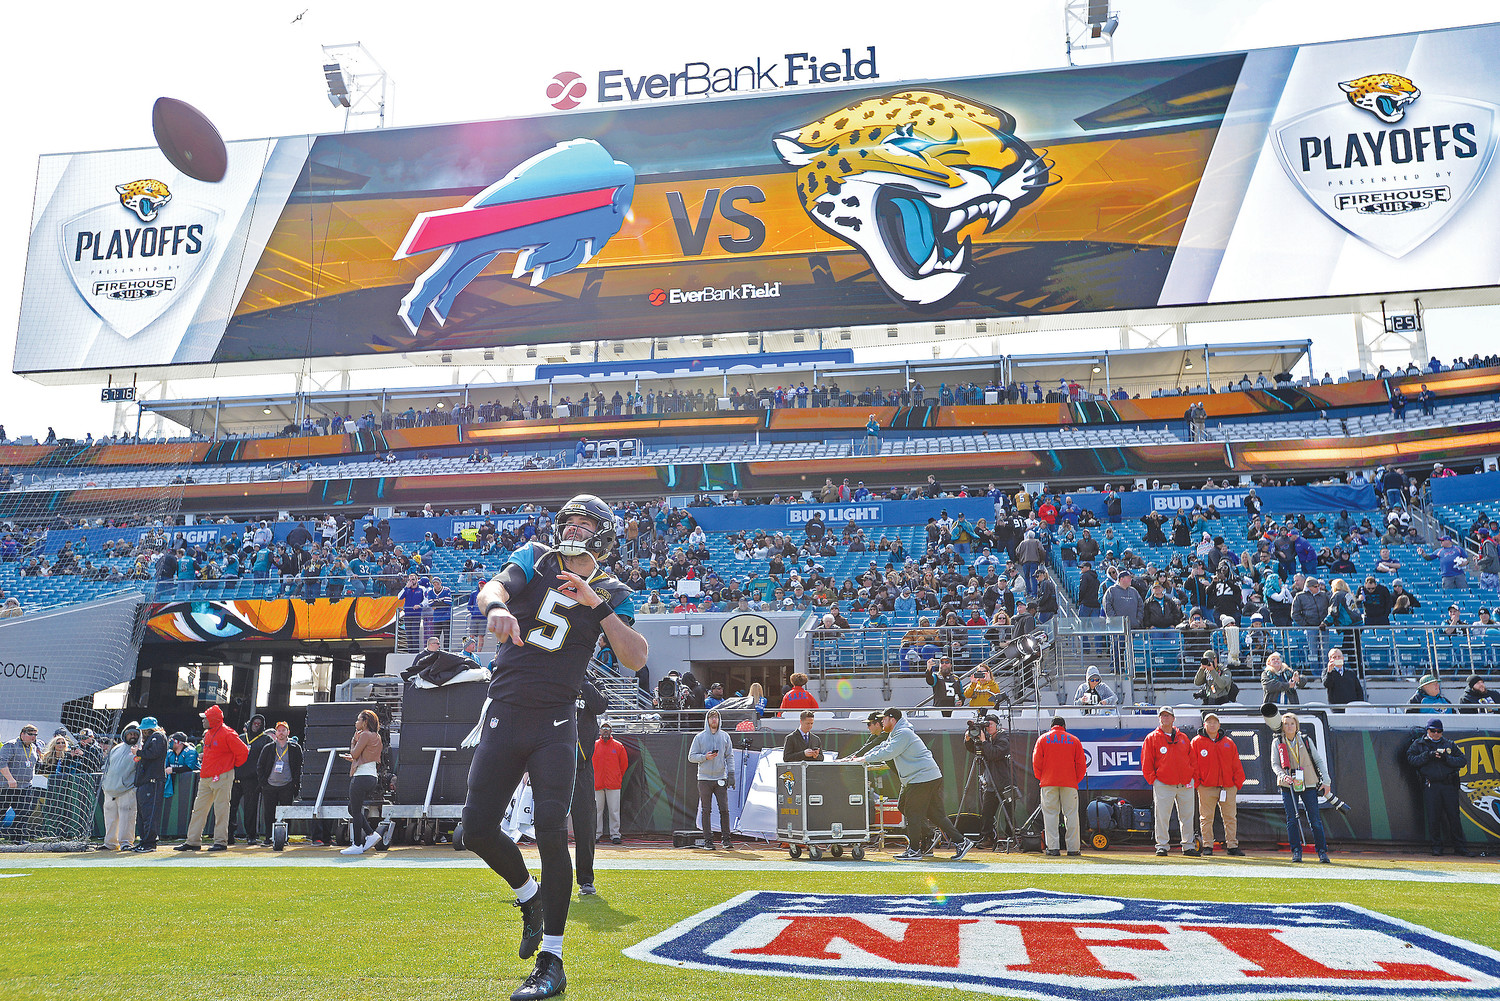 Jaguars quarterback Blake Bortles warms up Sunday, Jan. 7 before Jacksonville defeated the Buffalo Bills 10-3 in the wildcard round of the NFL playoffs.